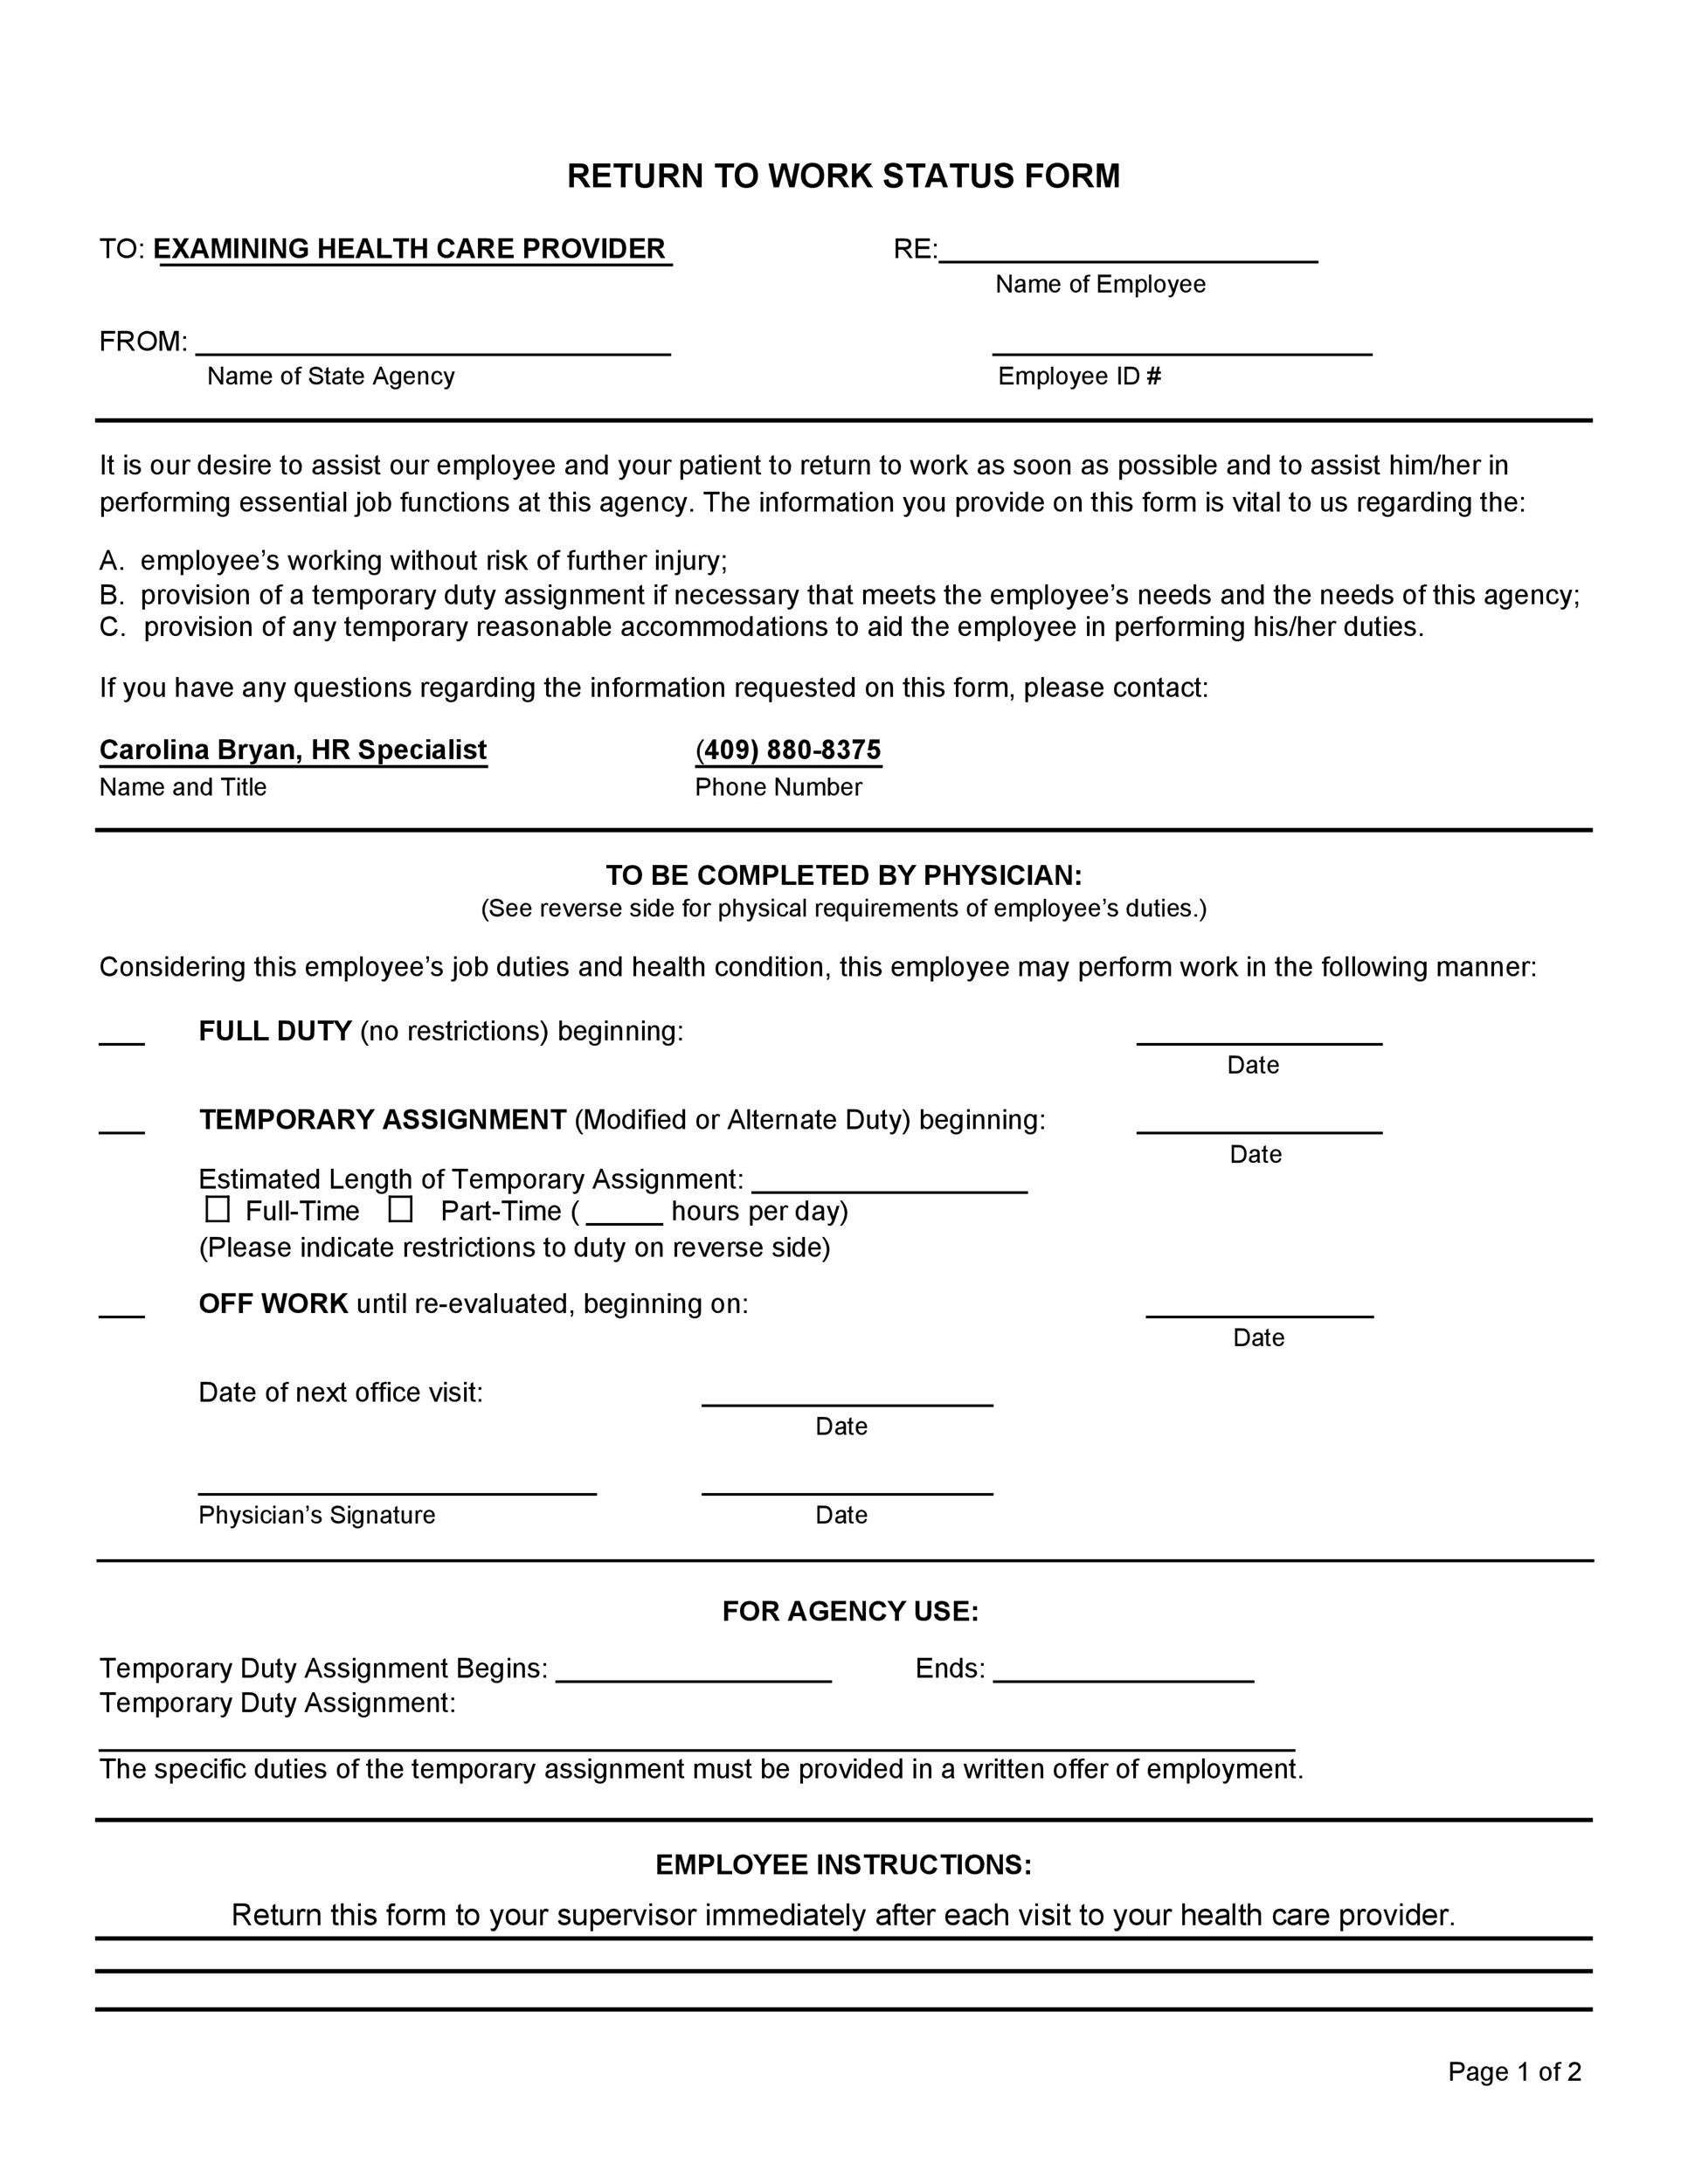 Free return to work form 43